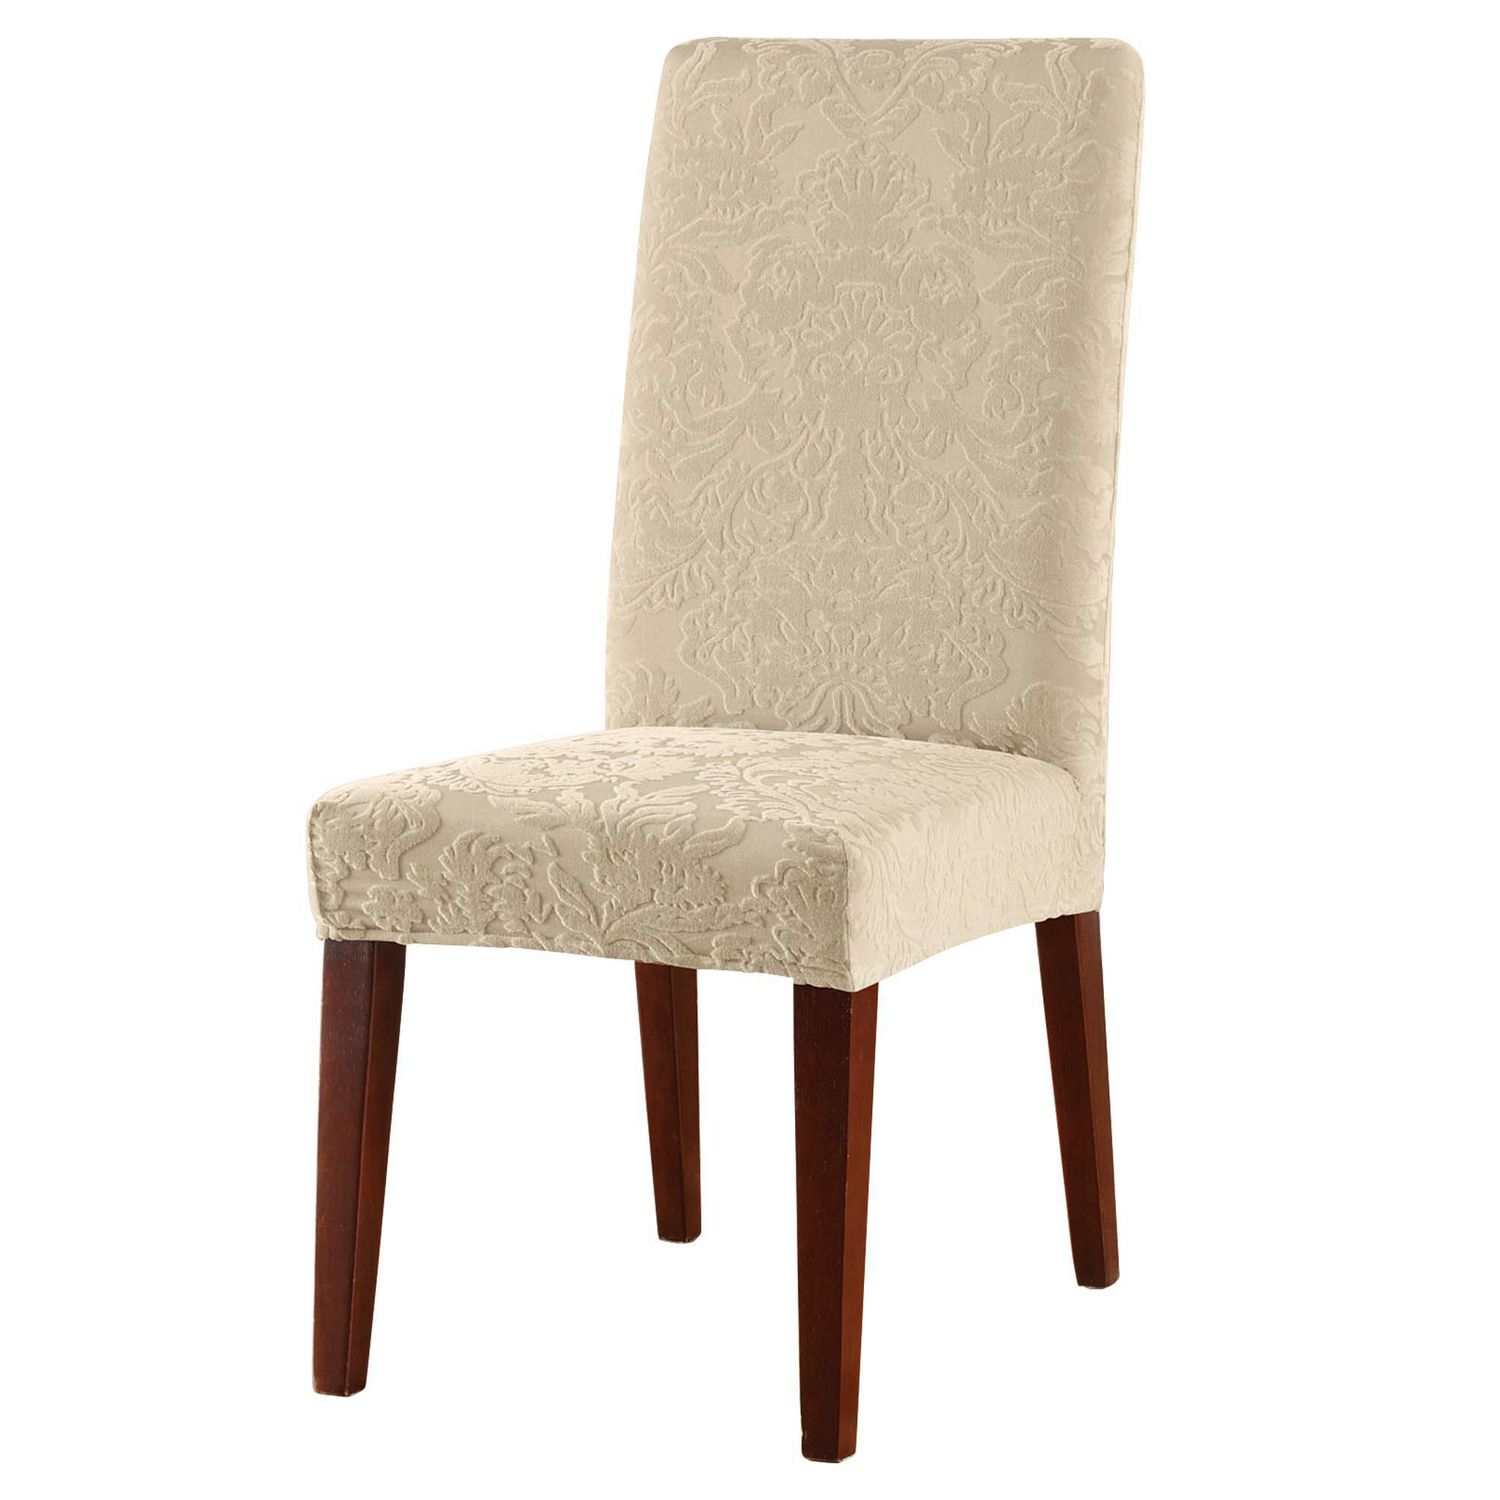 Damask Chair Sure Fit Jacquard Damask Stretch Dining Chair Slipcover